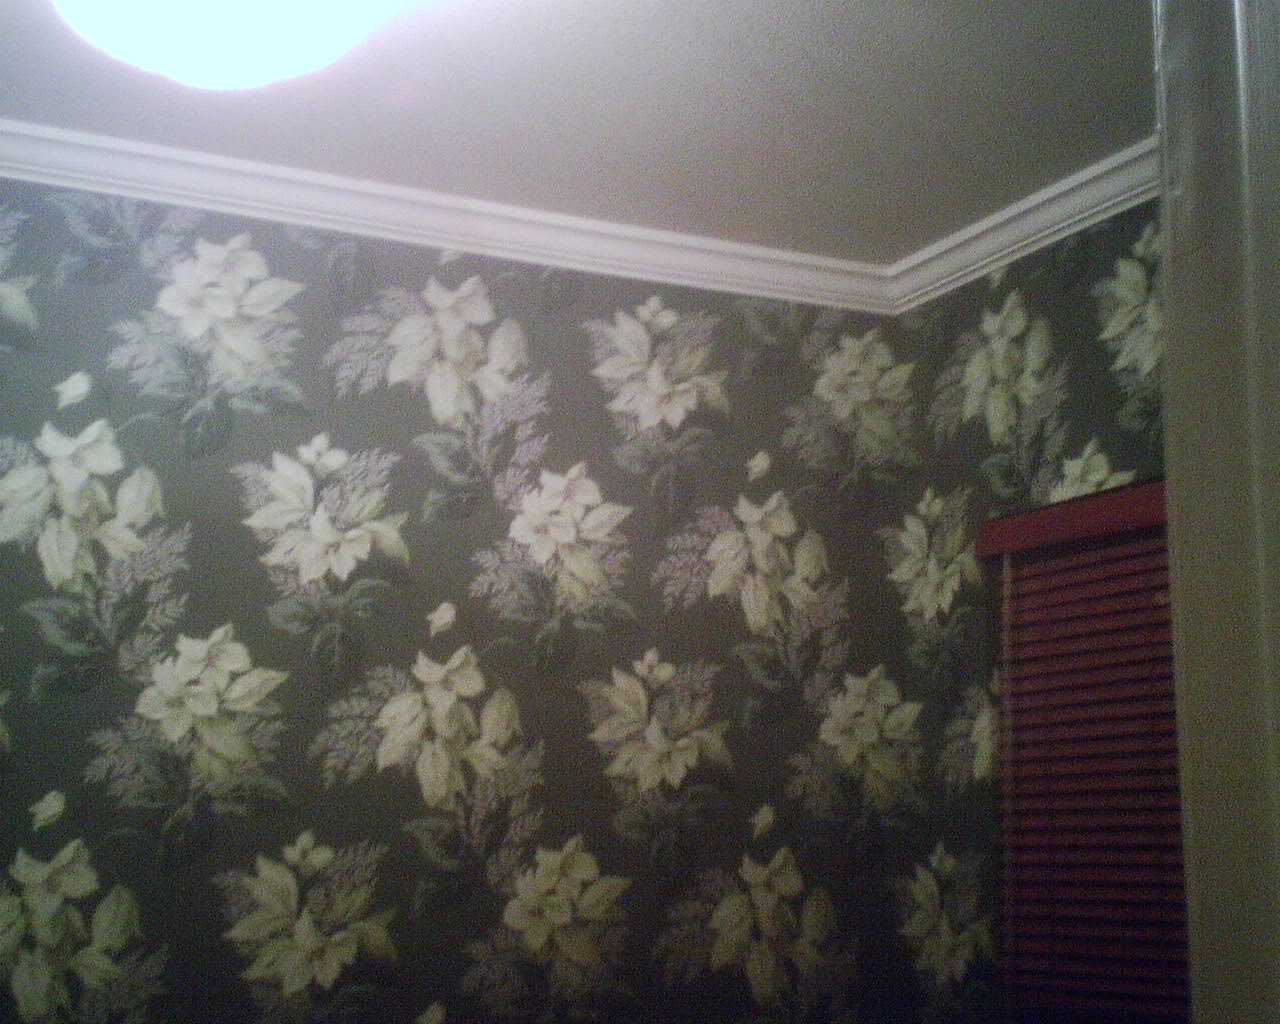 1930s Wallpaper in the Wallpaper Ladys Home Office 1280x1024